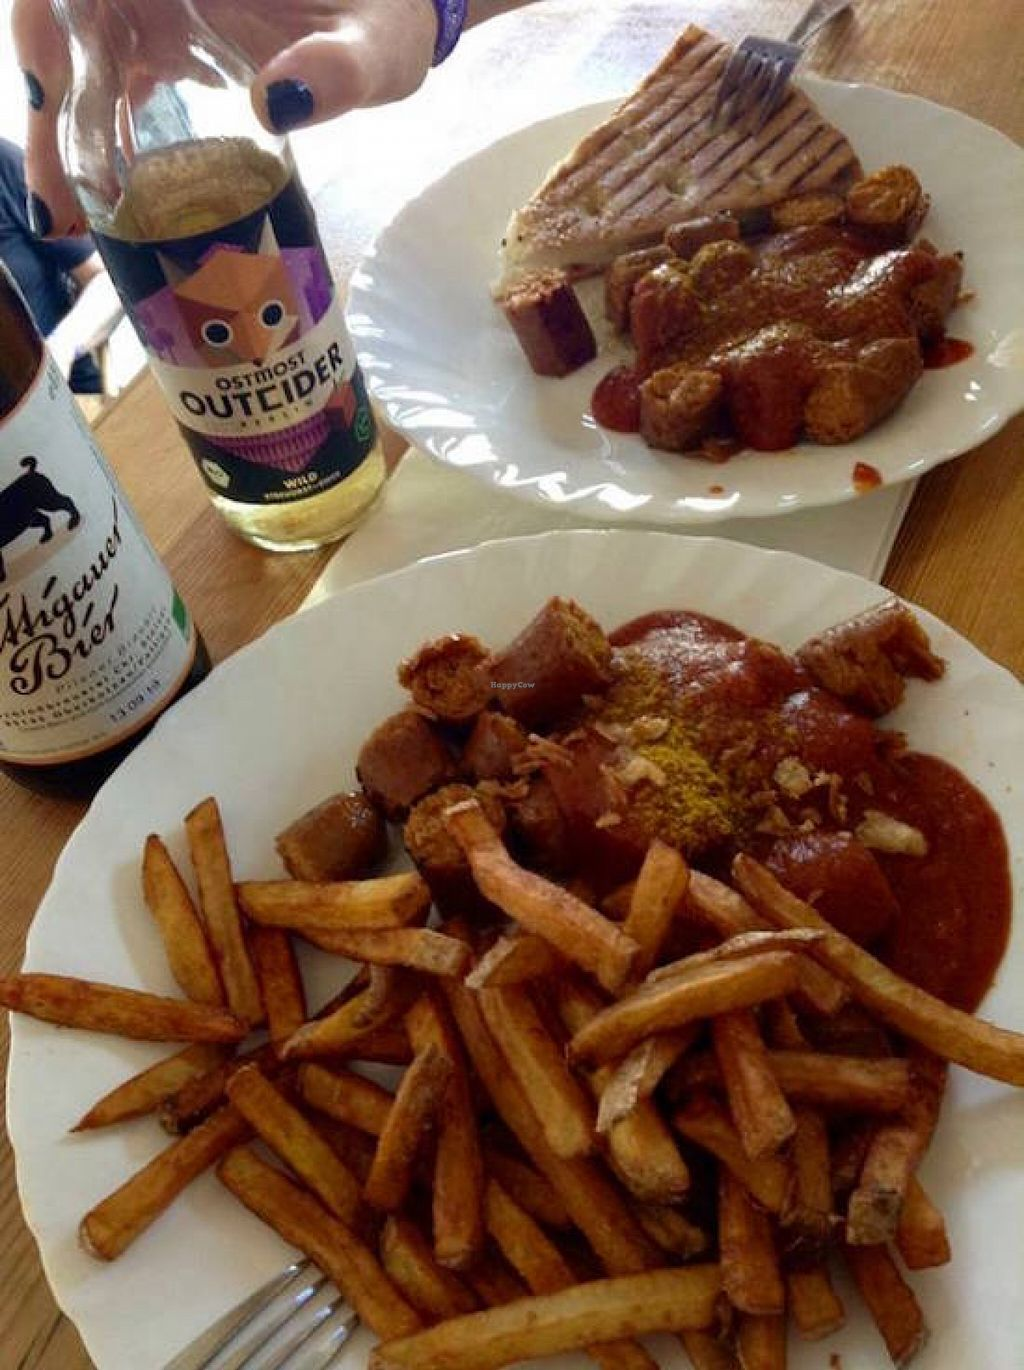 """Photo of Vleischerei  by <a href=""""/members/profile/Shel%20Graves"""">Shel Graves</a> <br/>Currywurst with bread or with chips <br/> May 22, 2016  - <a href='/contact/abuse/image/17729/150276'>Report</a>"""